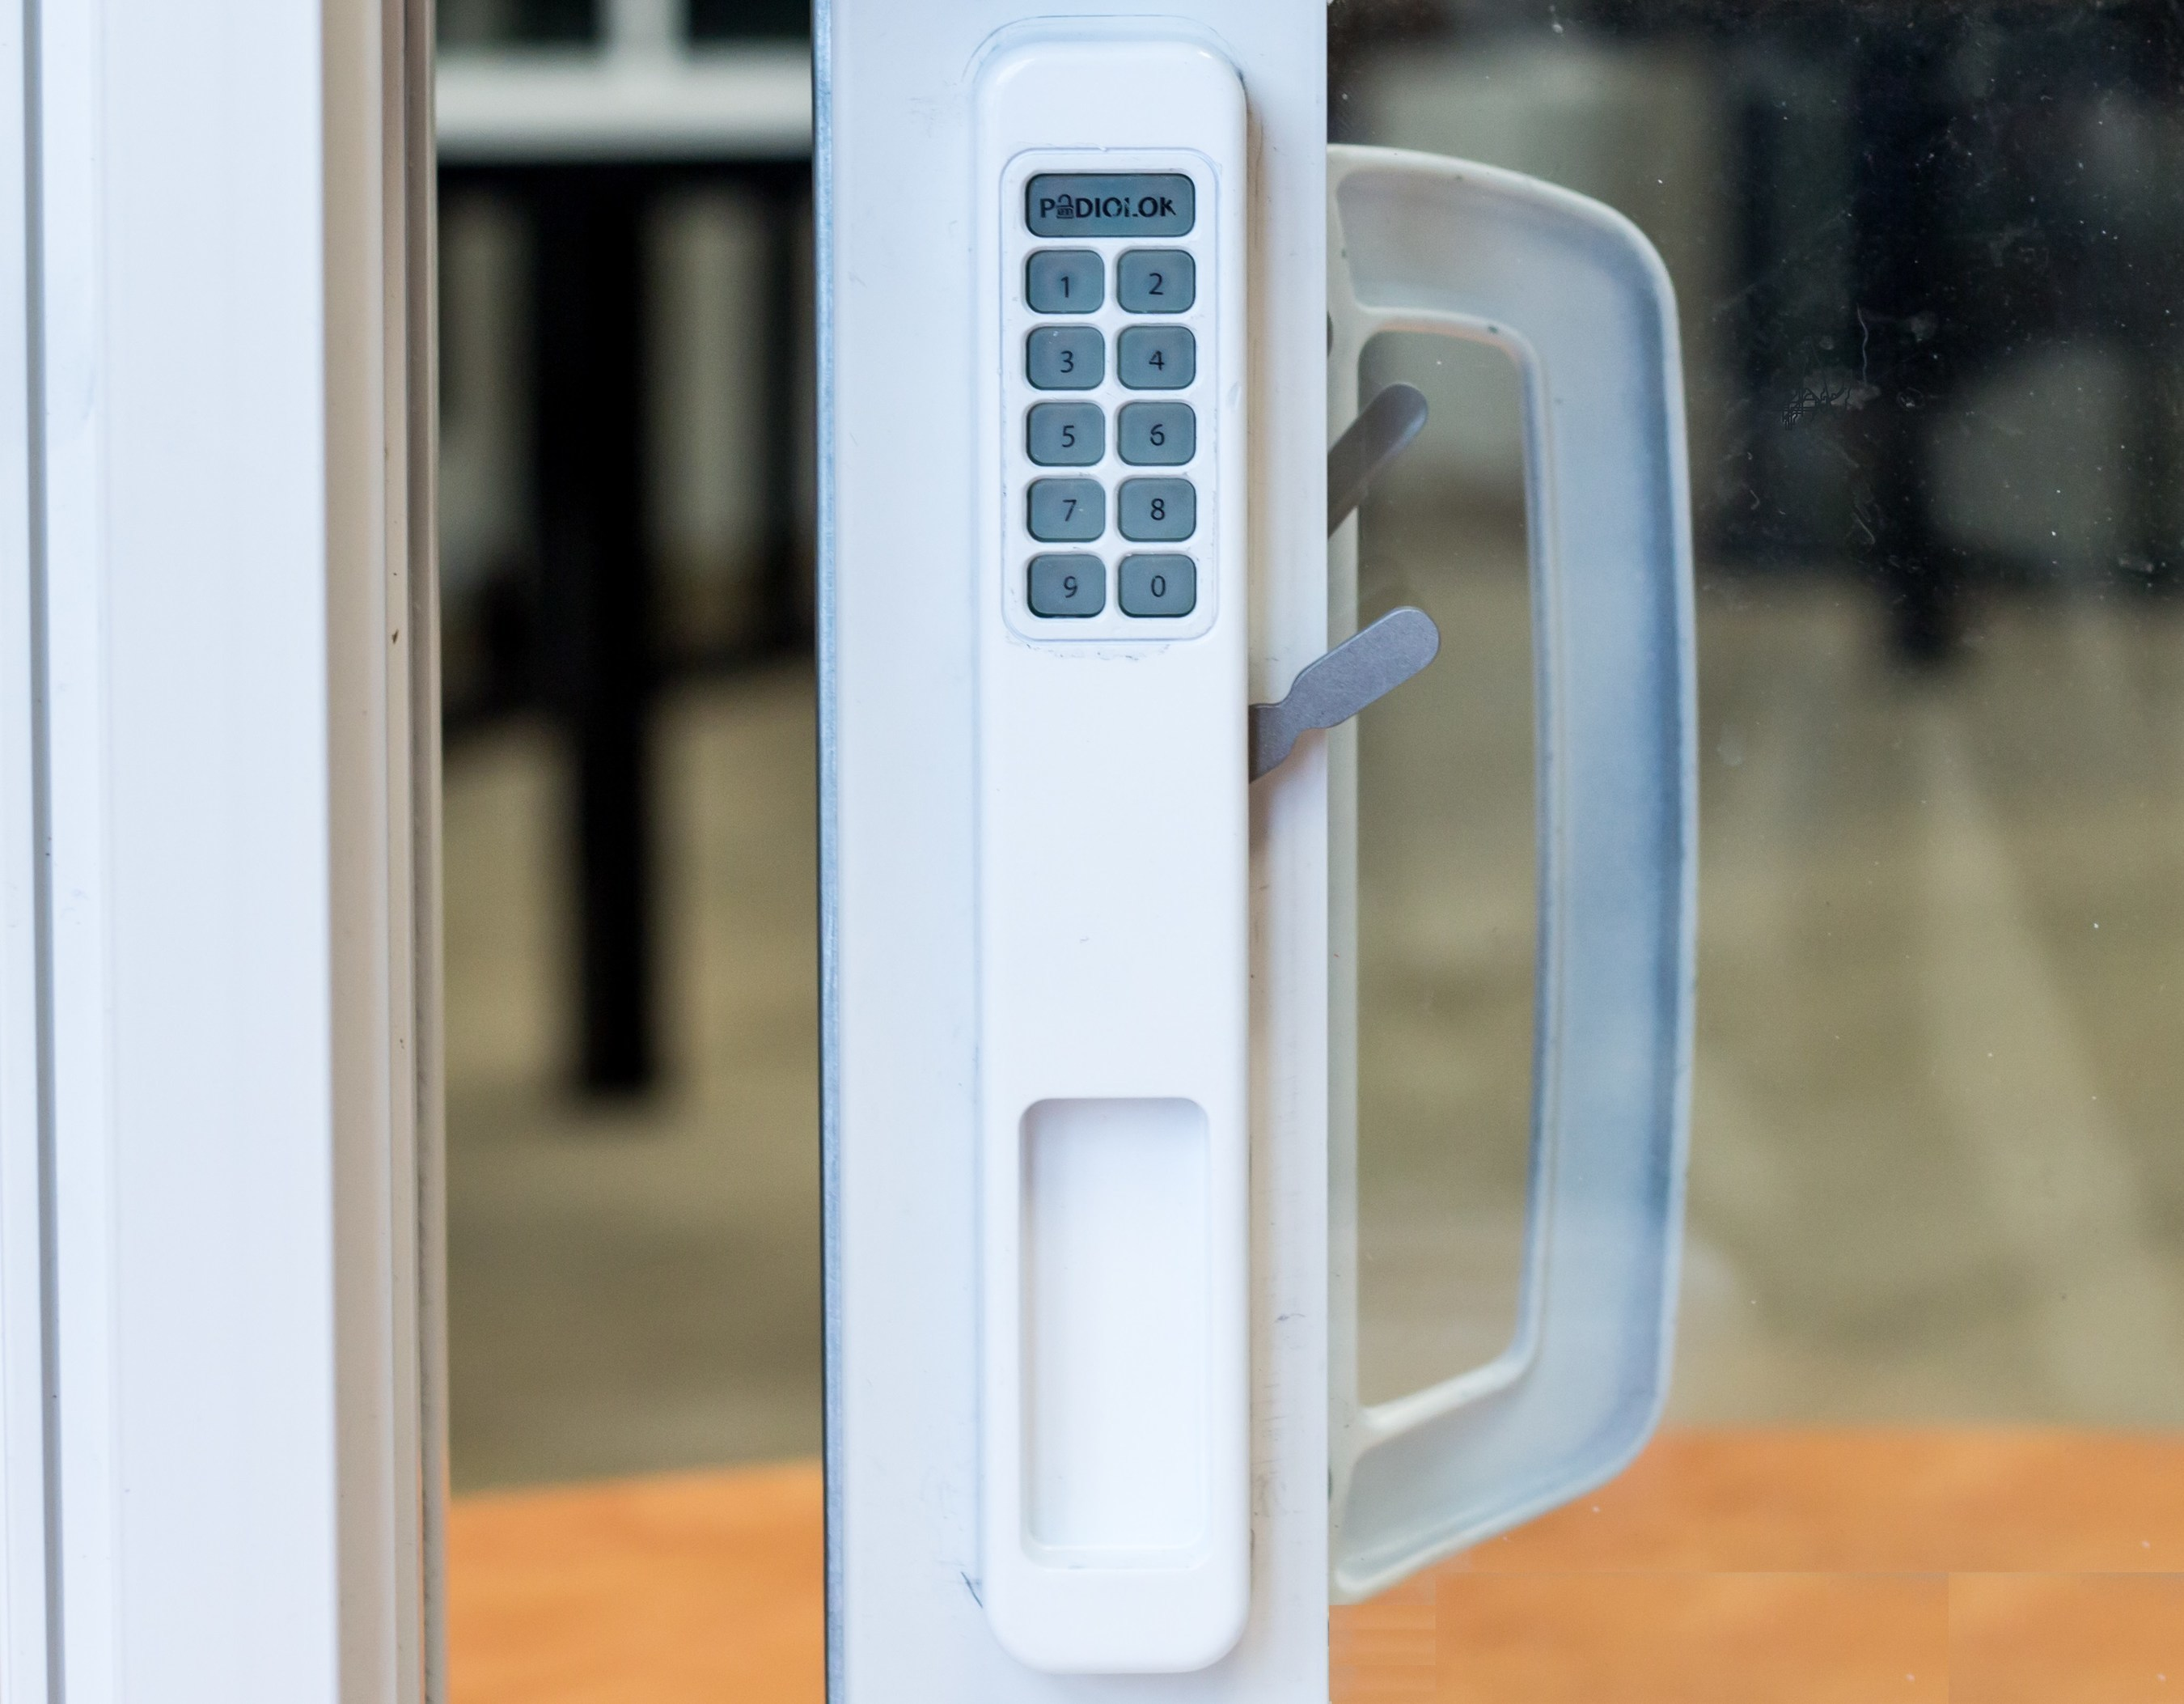 Padiolok Liberates Homeowners And Travelers From 50 Years Of Suffering From Inadequate Sliding Patio Door Locks